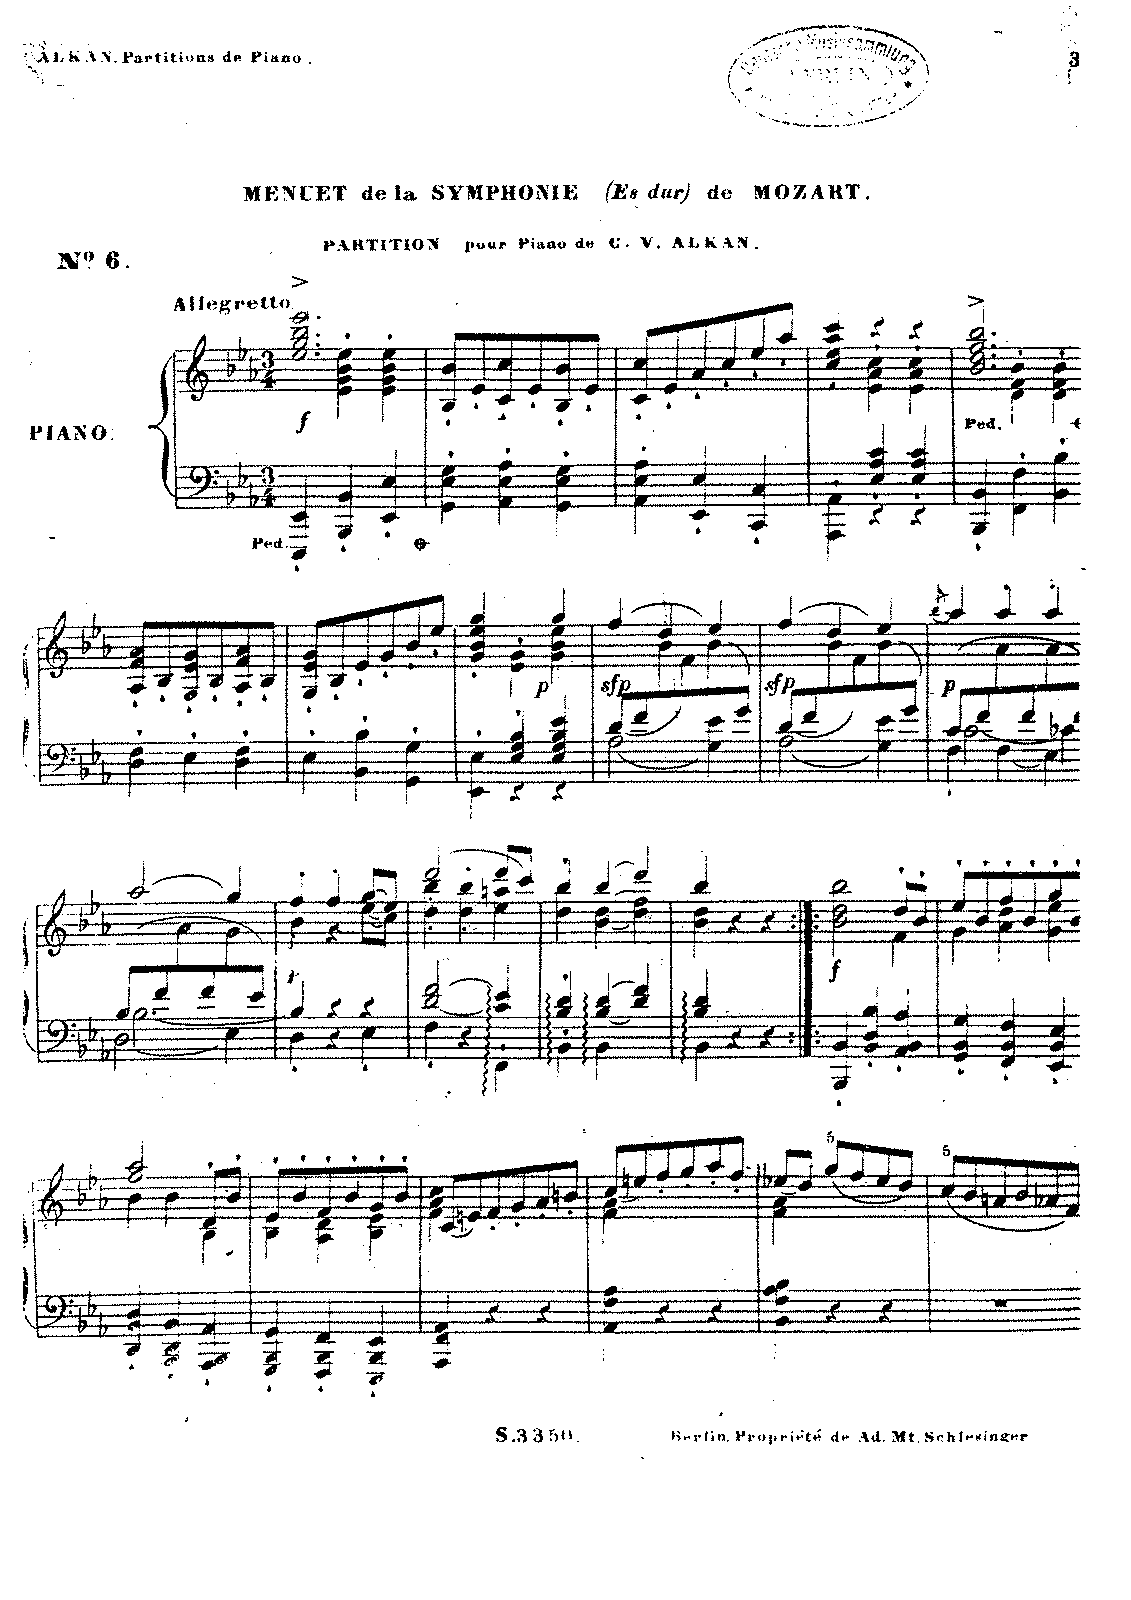 PMLP22768-Alkan - Transcription - Mozart - Menuet from Symphony No.39 (5 pag).pdf